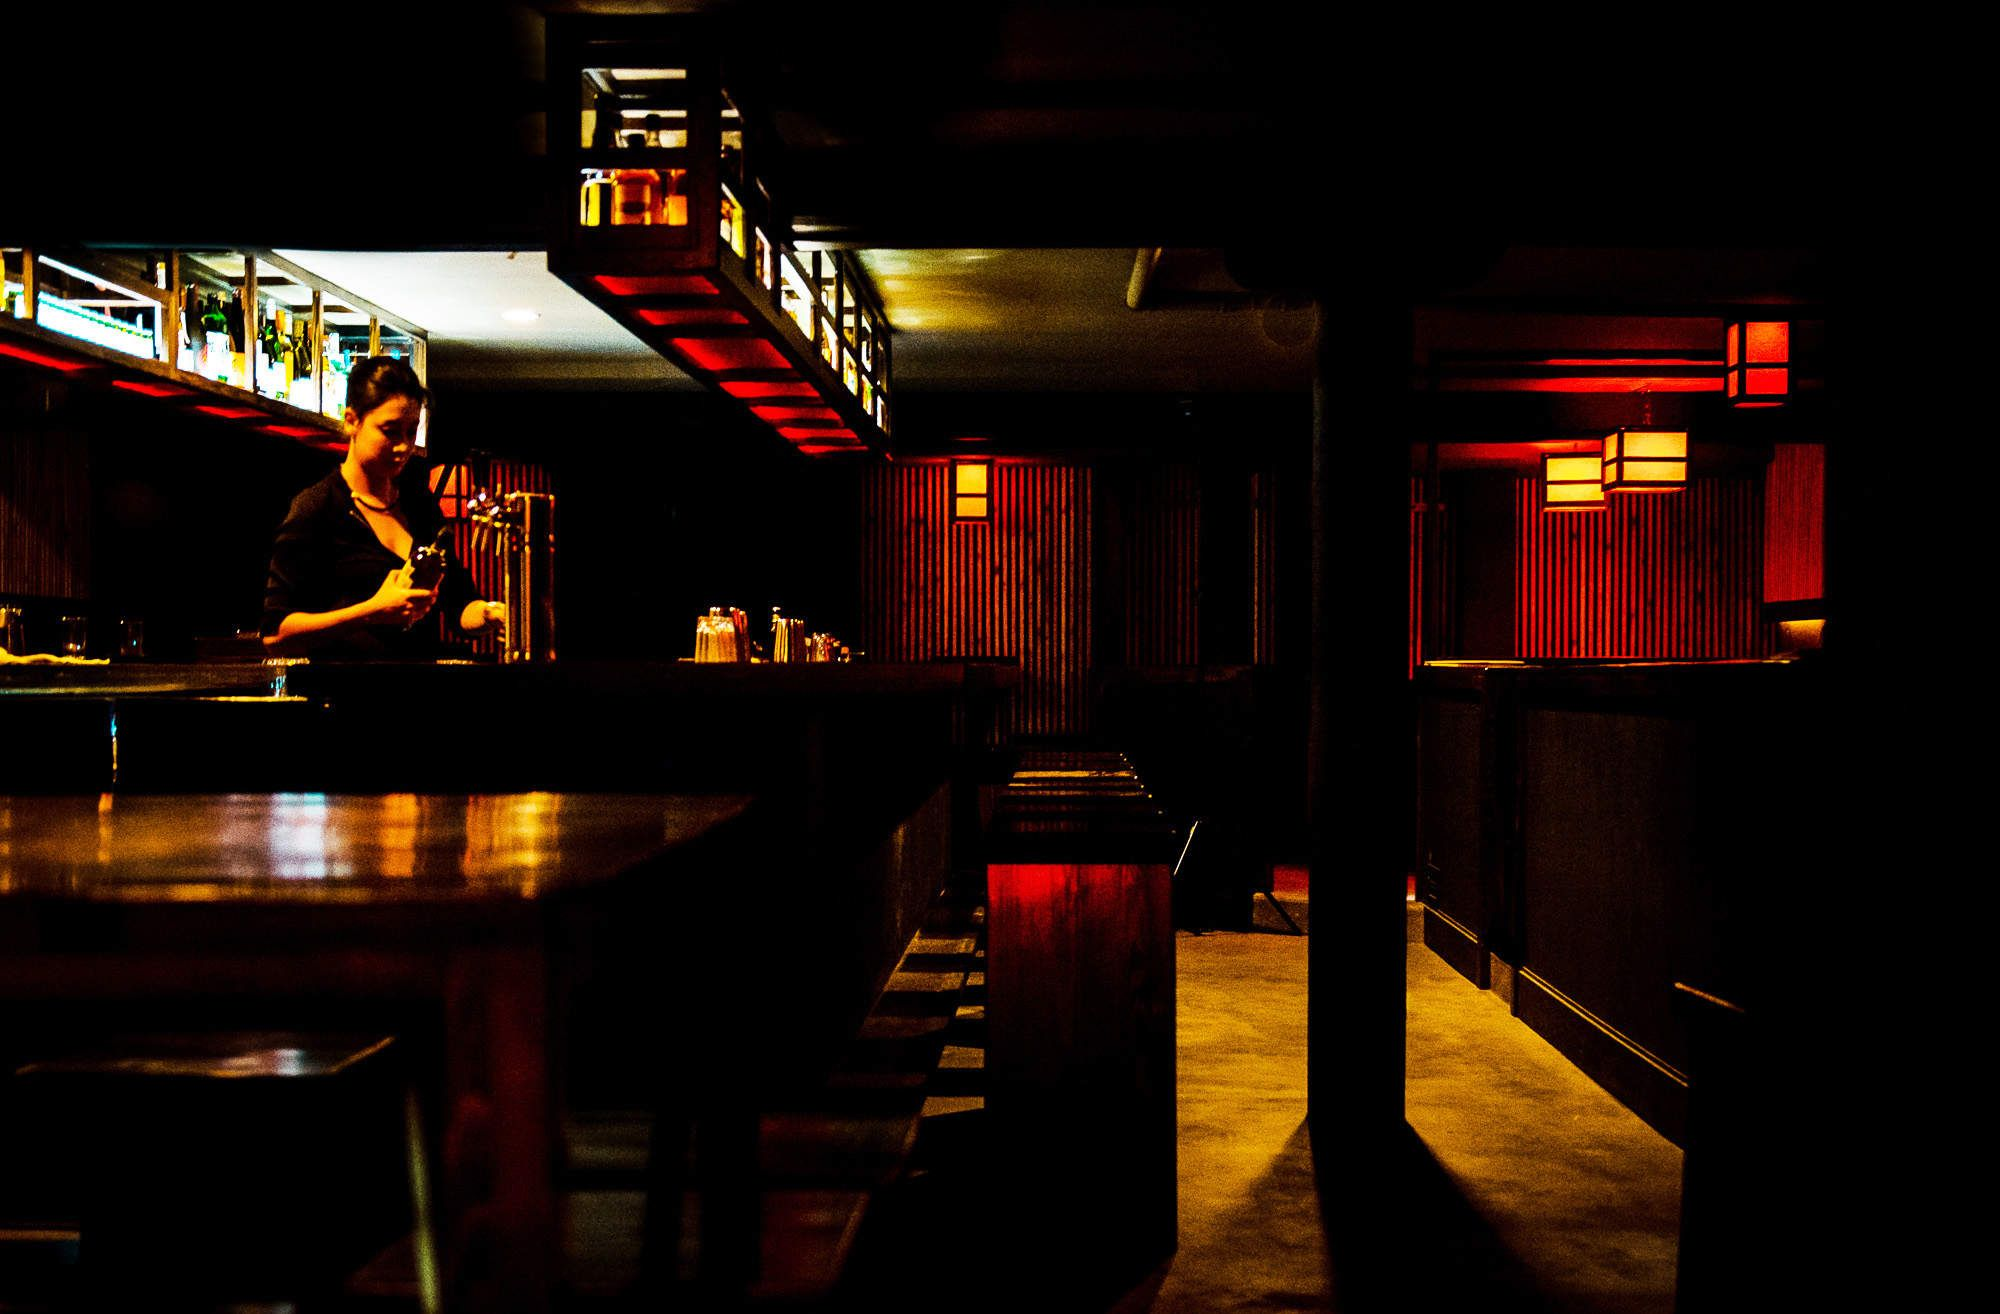 How to Get Into Chicago's Secret Bars | Chitown - Chicago